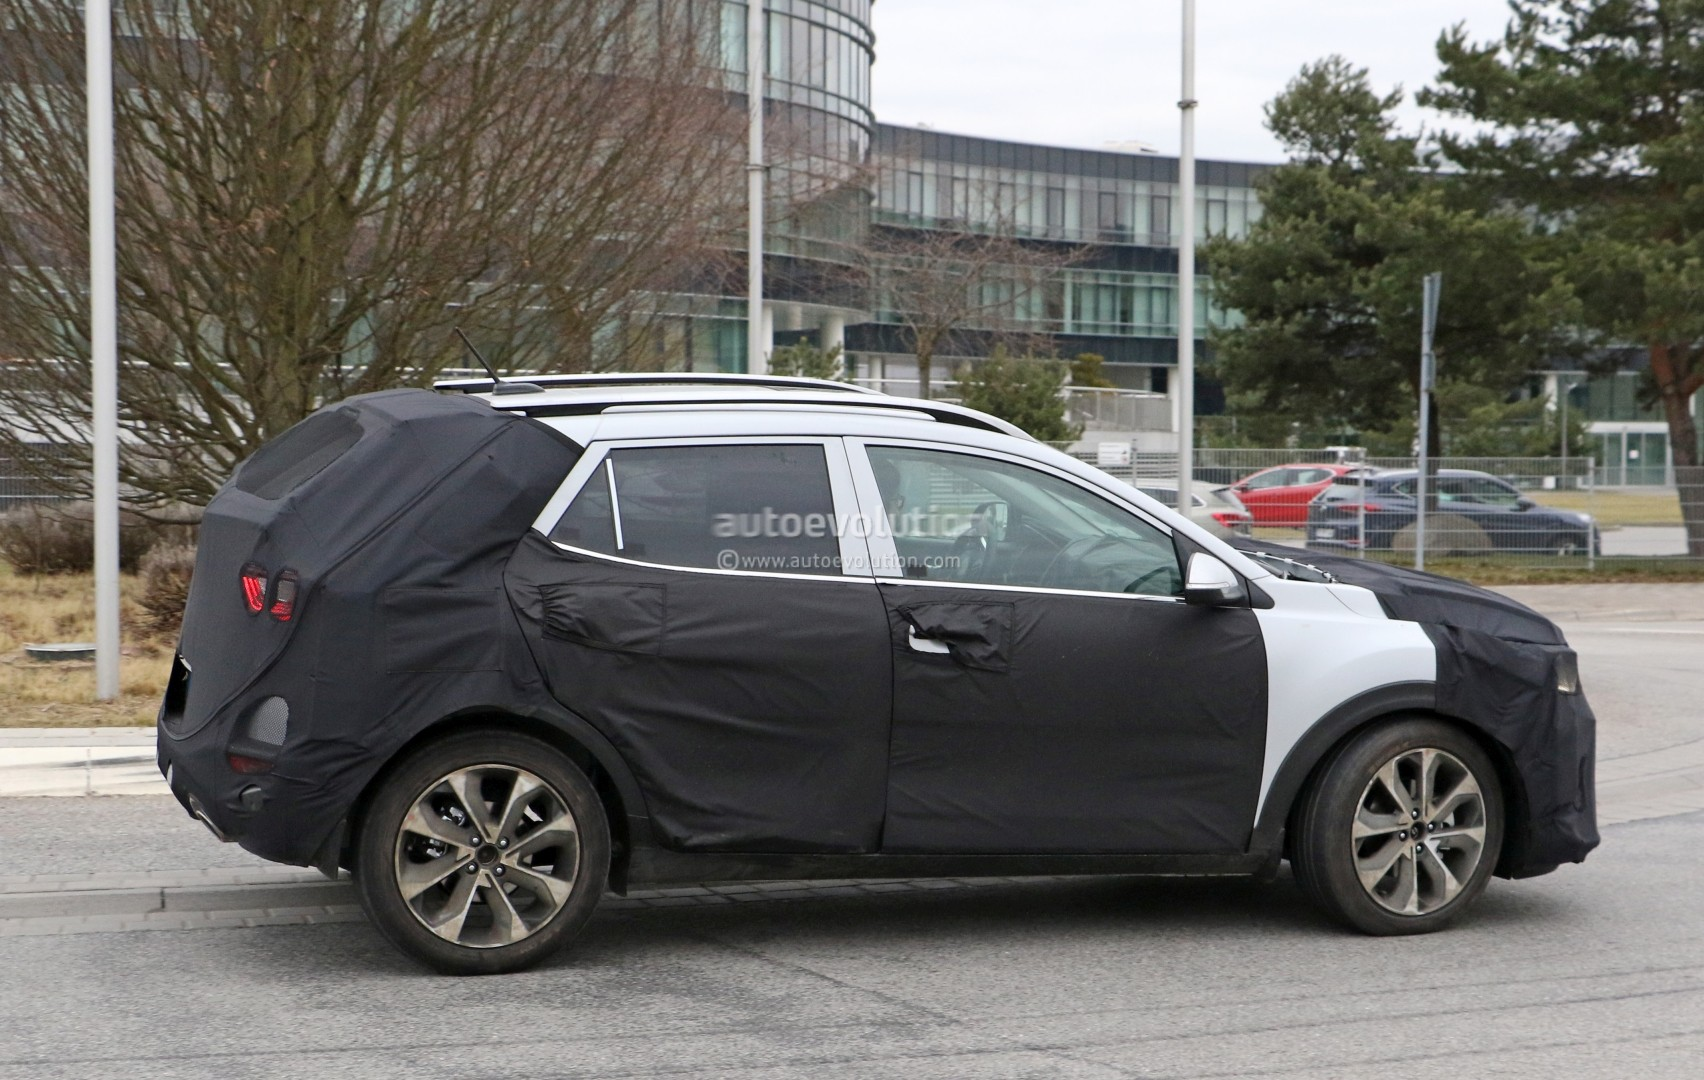 2017 - [Kia] Stonic 2018-kia-stonic-spied-up-close-in-germany-shows-sexy-production-lights_7